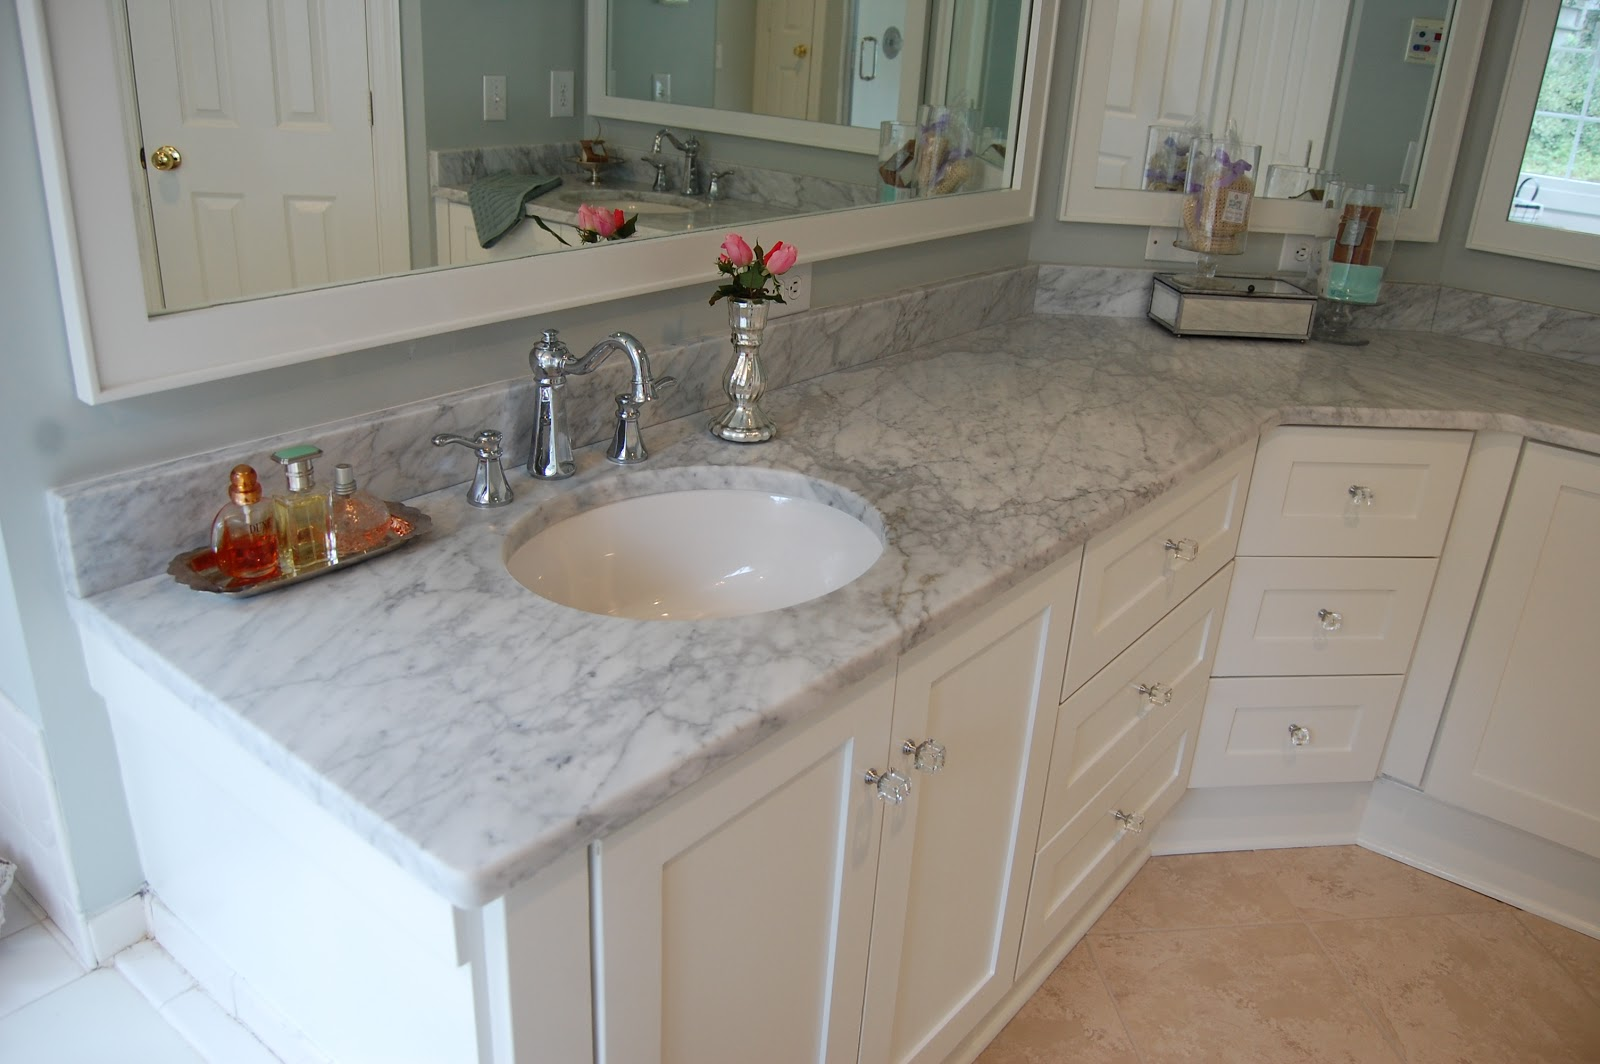 Birds of a feather bathroom reno sort of - Marble countertops for bathrooms ...